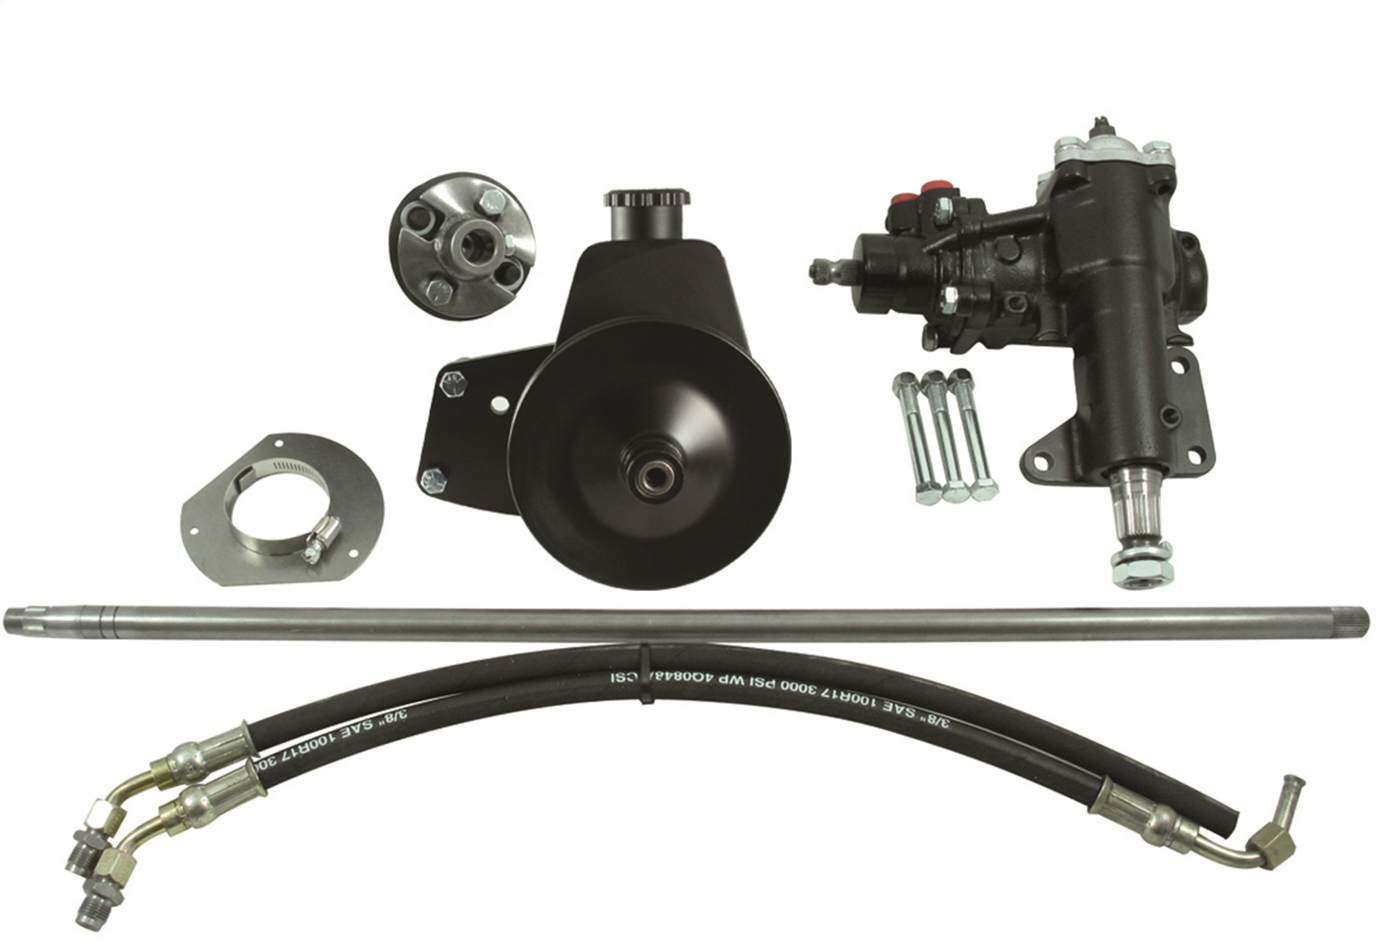 Borgeson 999020 Steering Box, Power, 14 to 1 Ratio, Brackets / Joints / Lines / Pump, Iron, Small Block Ford, Ford Mustang 1965-66, Kit